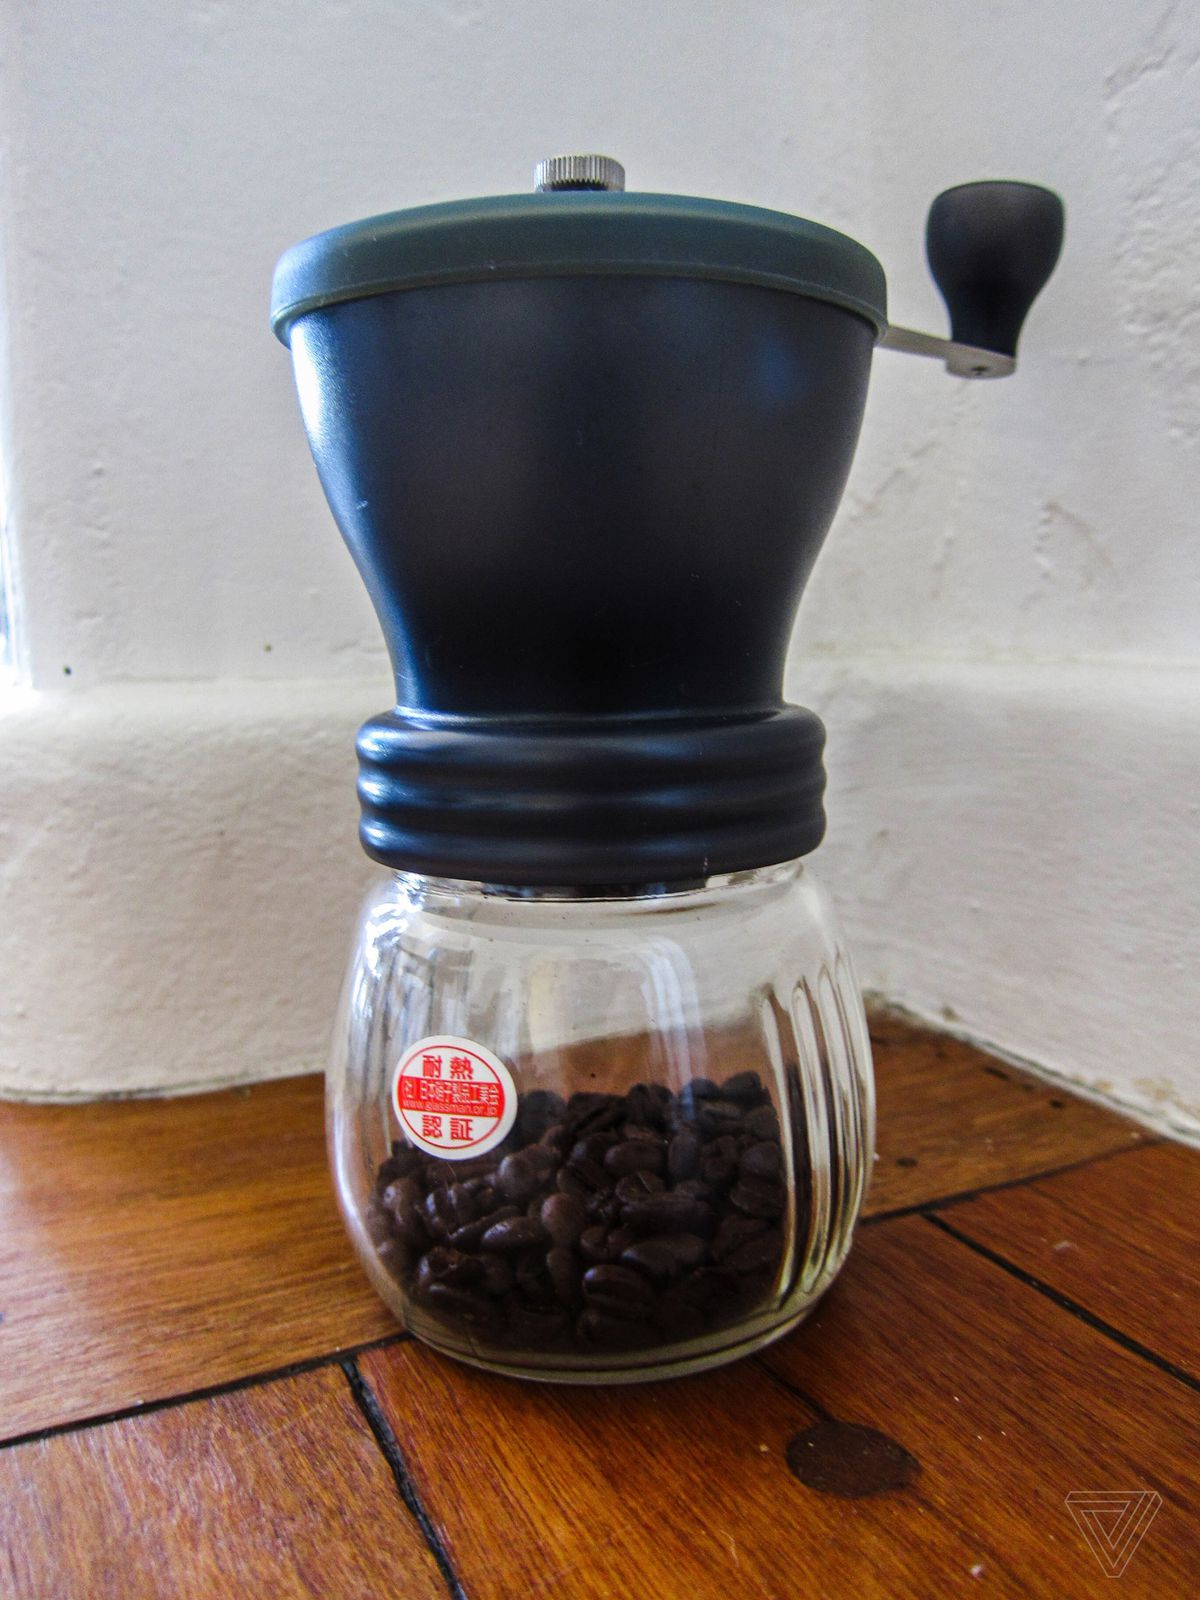 this silent coffee grinder